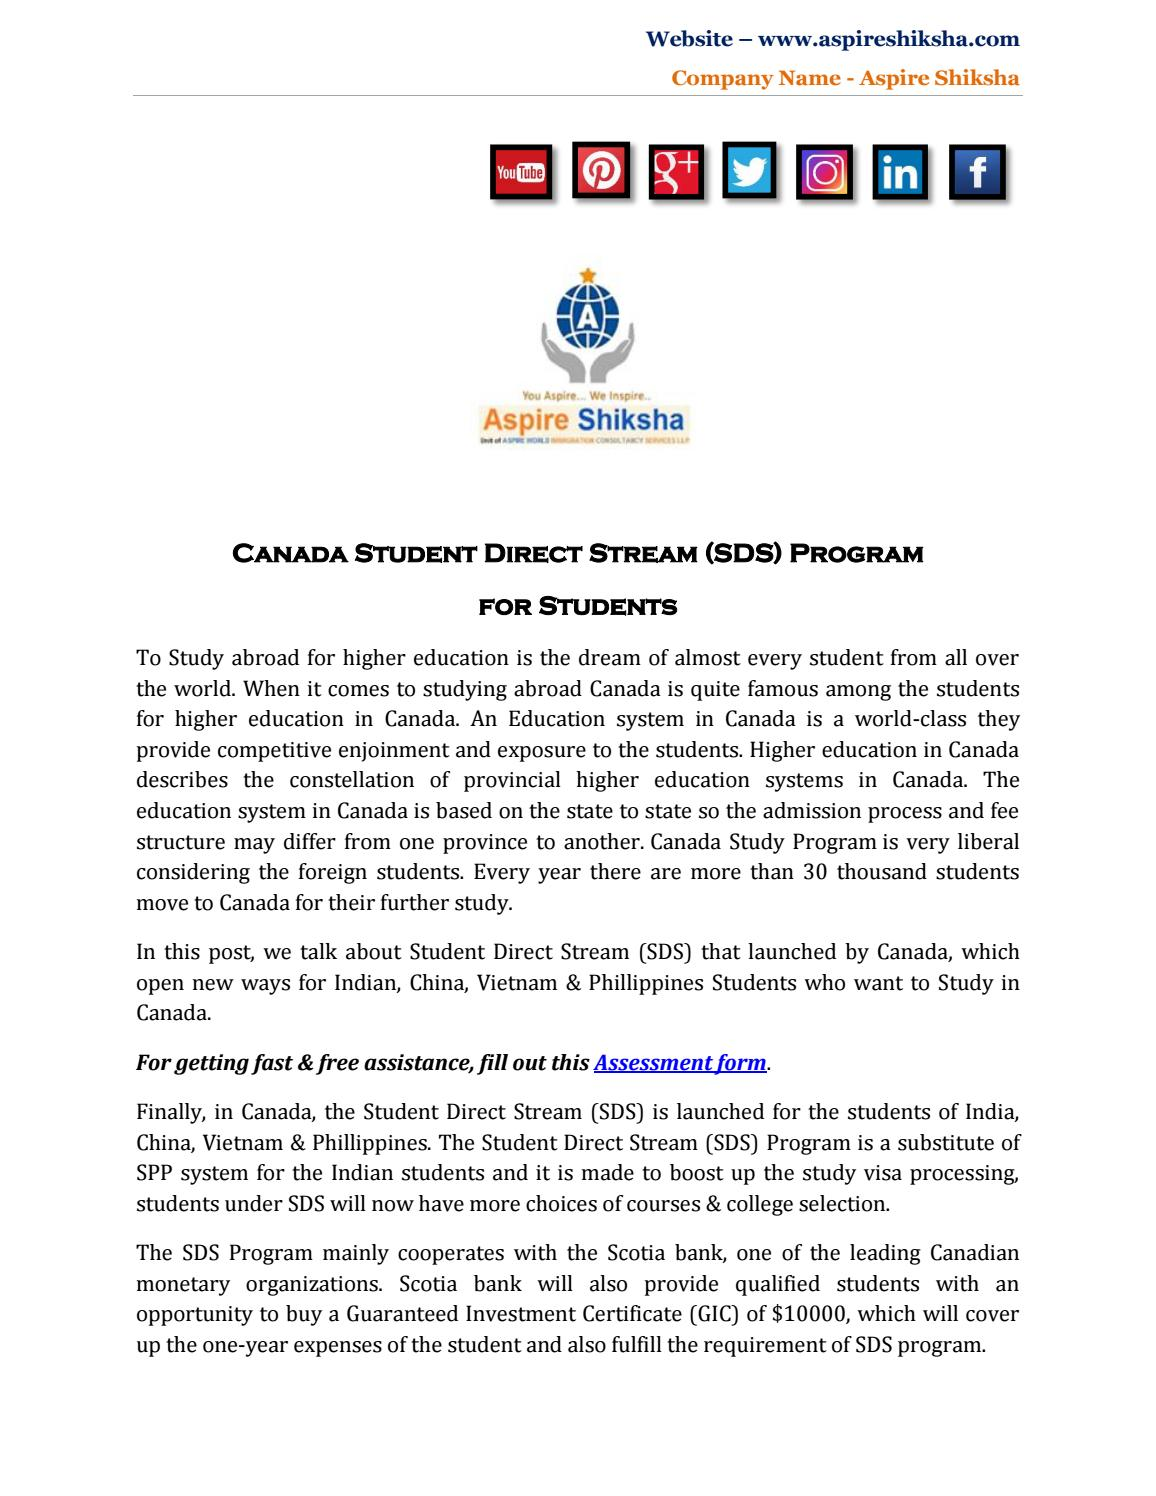 Canada Student Direct Stream (SDS) Program For Students by Aspire